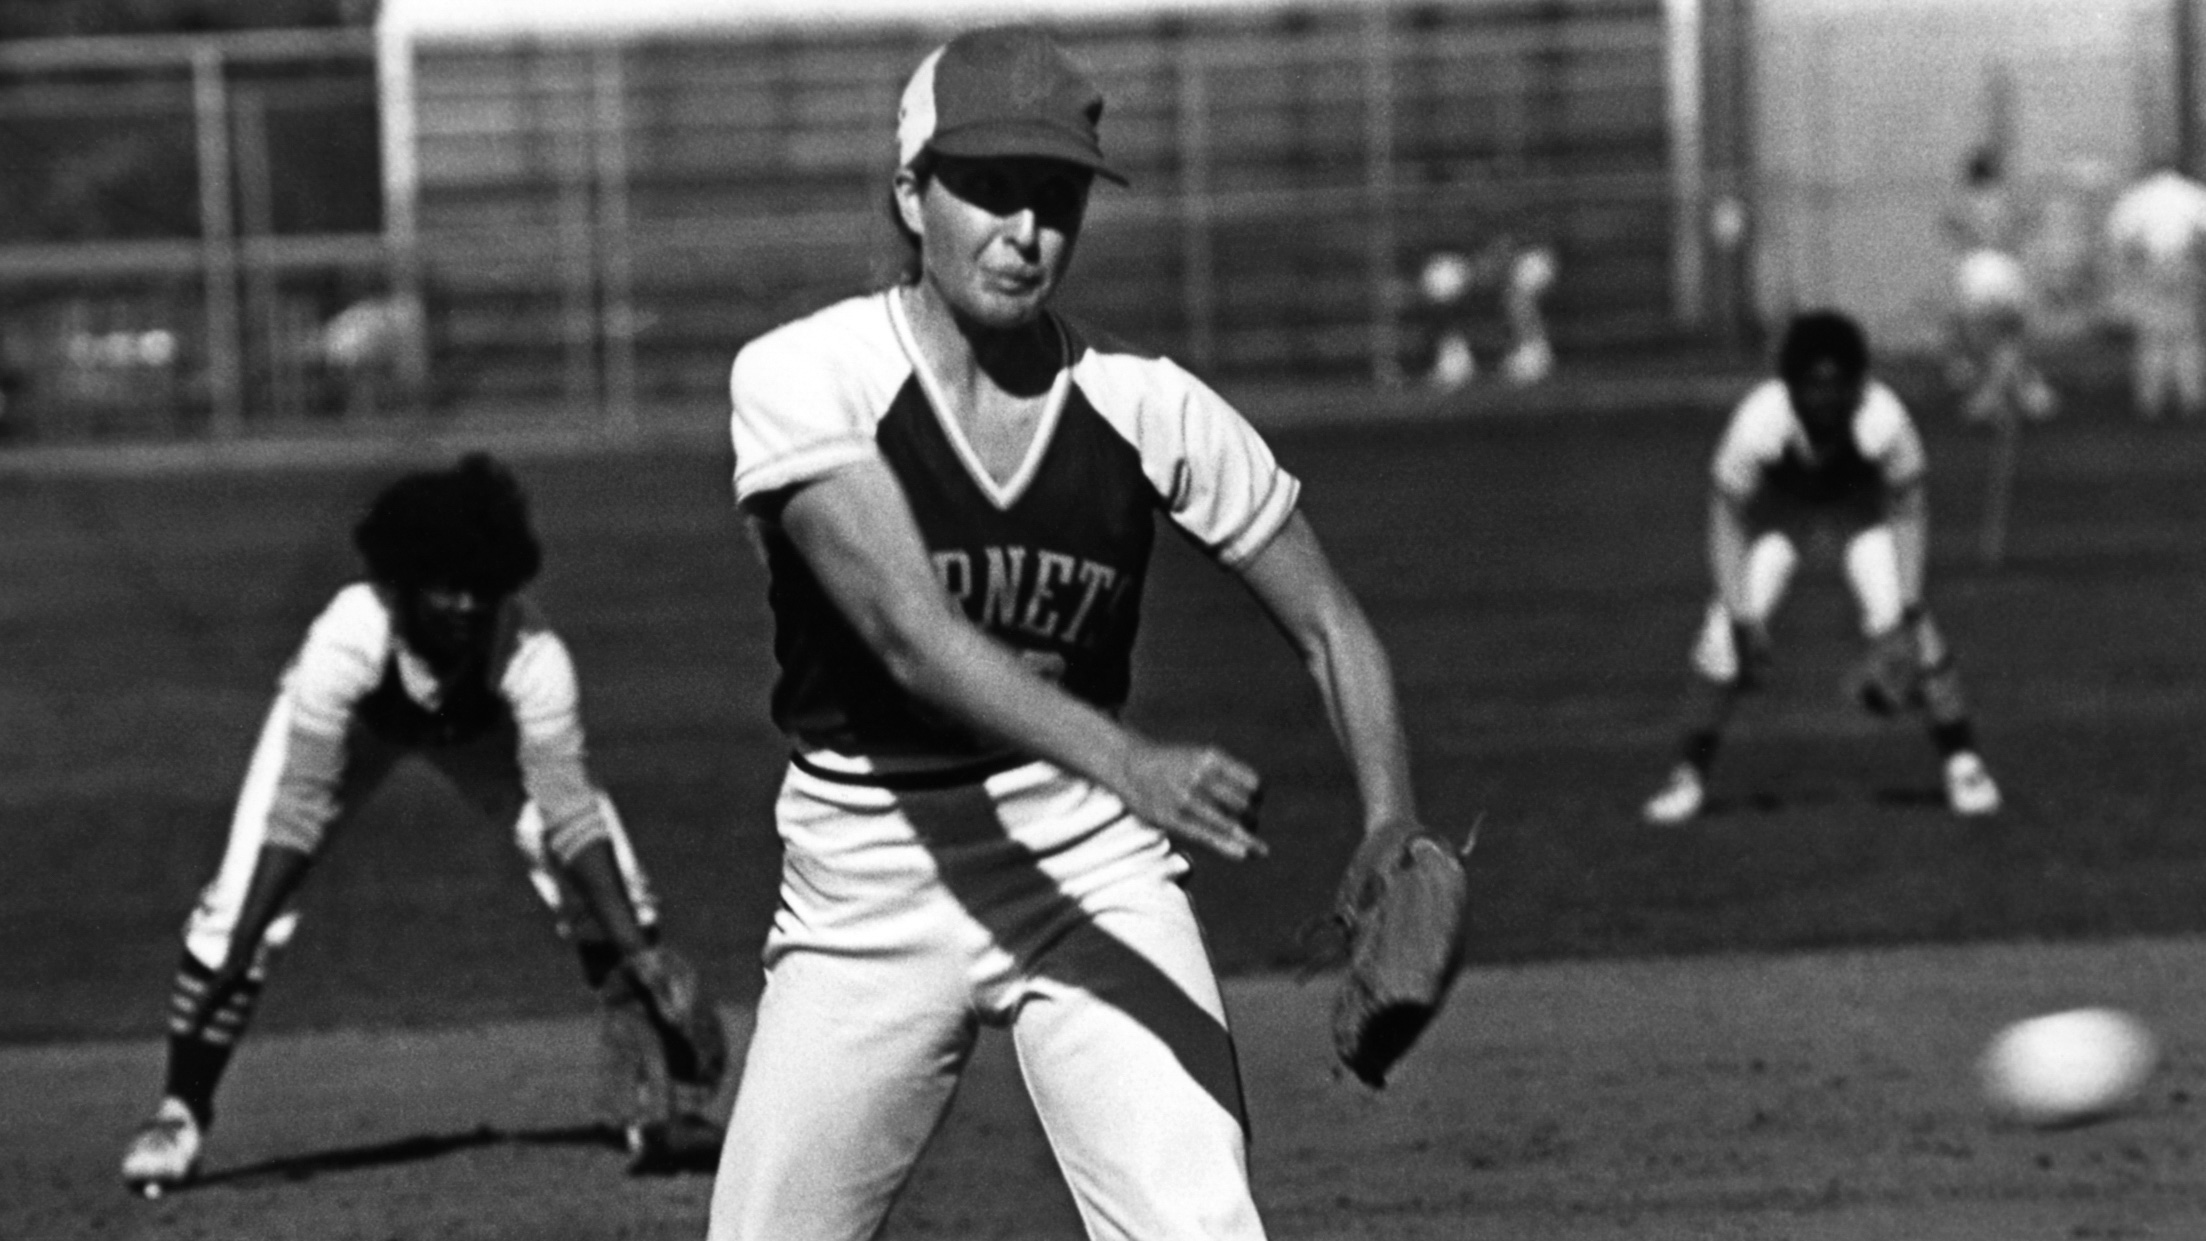 Sacramento State alumna Joanne English will have her No. 21 jersey retired Saturday at Shea Stadium. English had a 117-49 career record, earned two first-team All-American honors and won Division II National Softball Player of the Year in 1981. (Photo courtesy of Sac State Athletics)